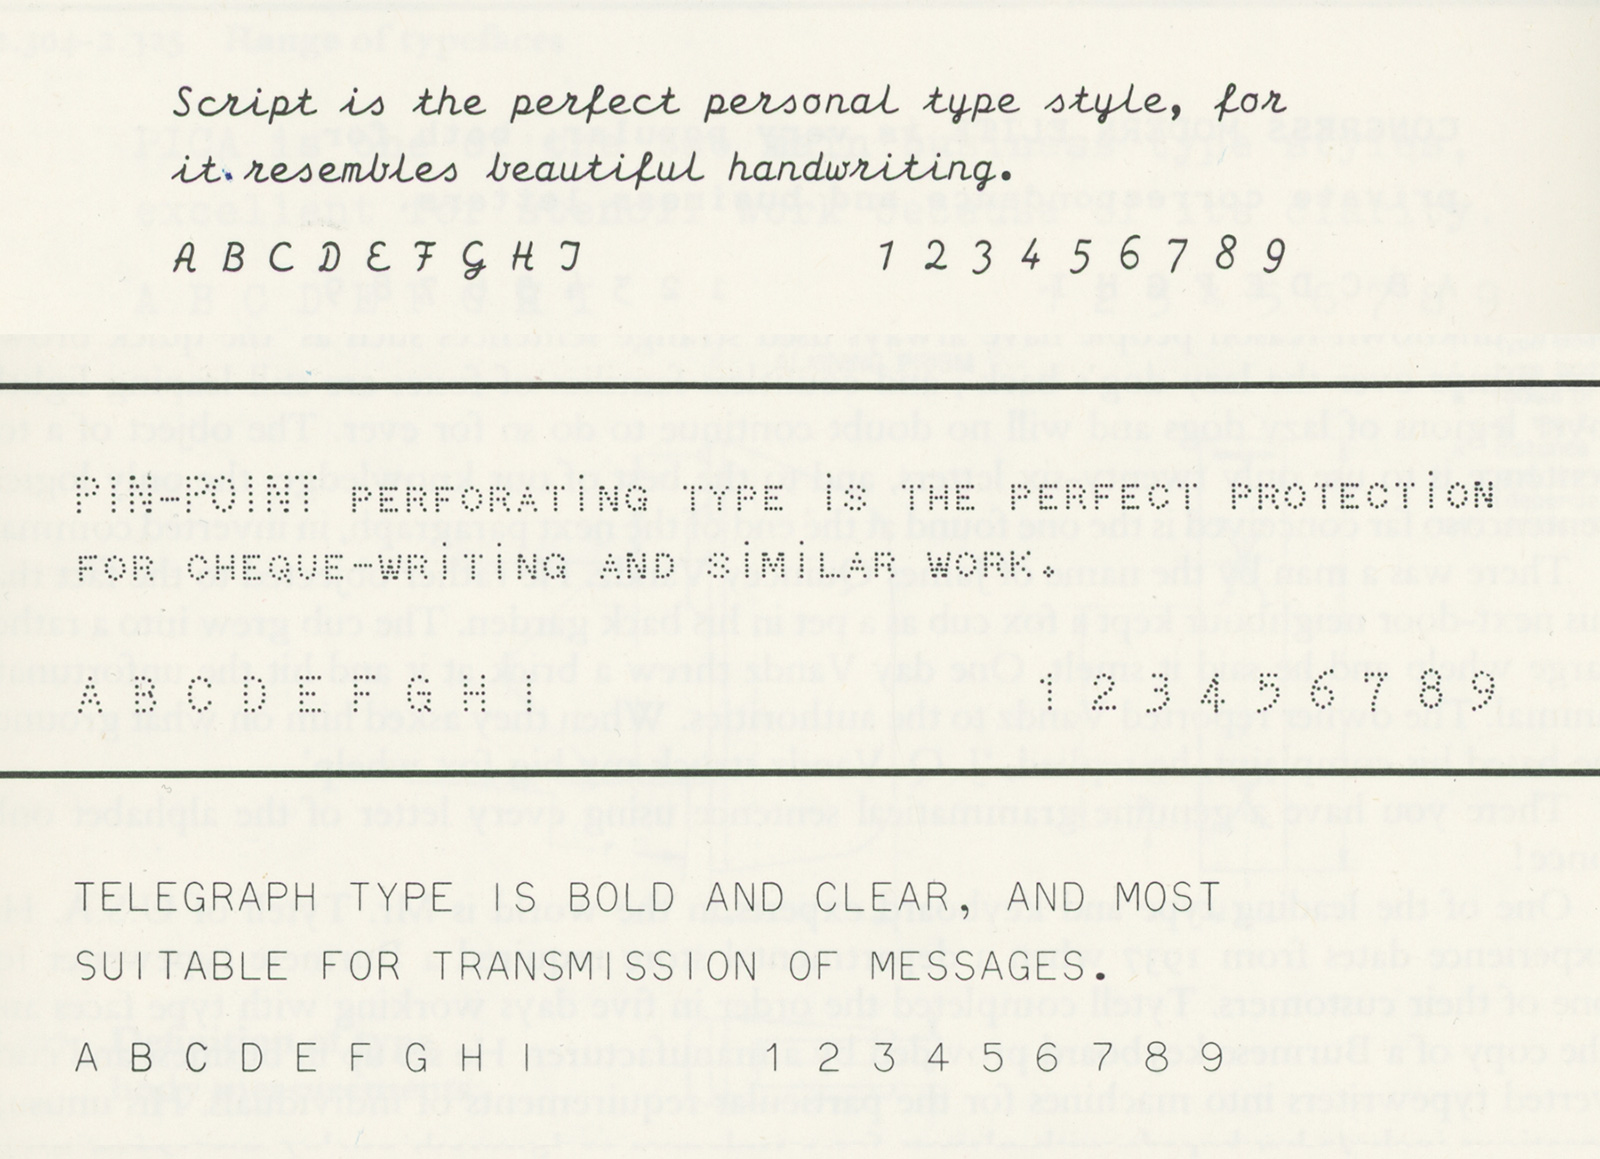 Samples of script, perforating, and shiftless typefaces for typewriters. Source: Beeching, W.A. Century of the typewriter. London: William Heinemann Ltd, 1974, 80-81.